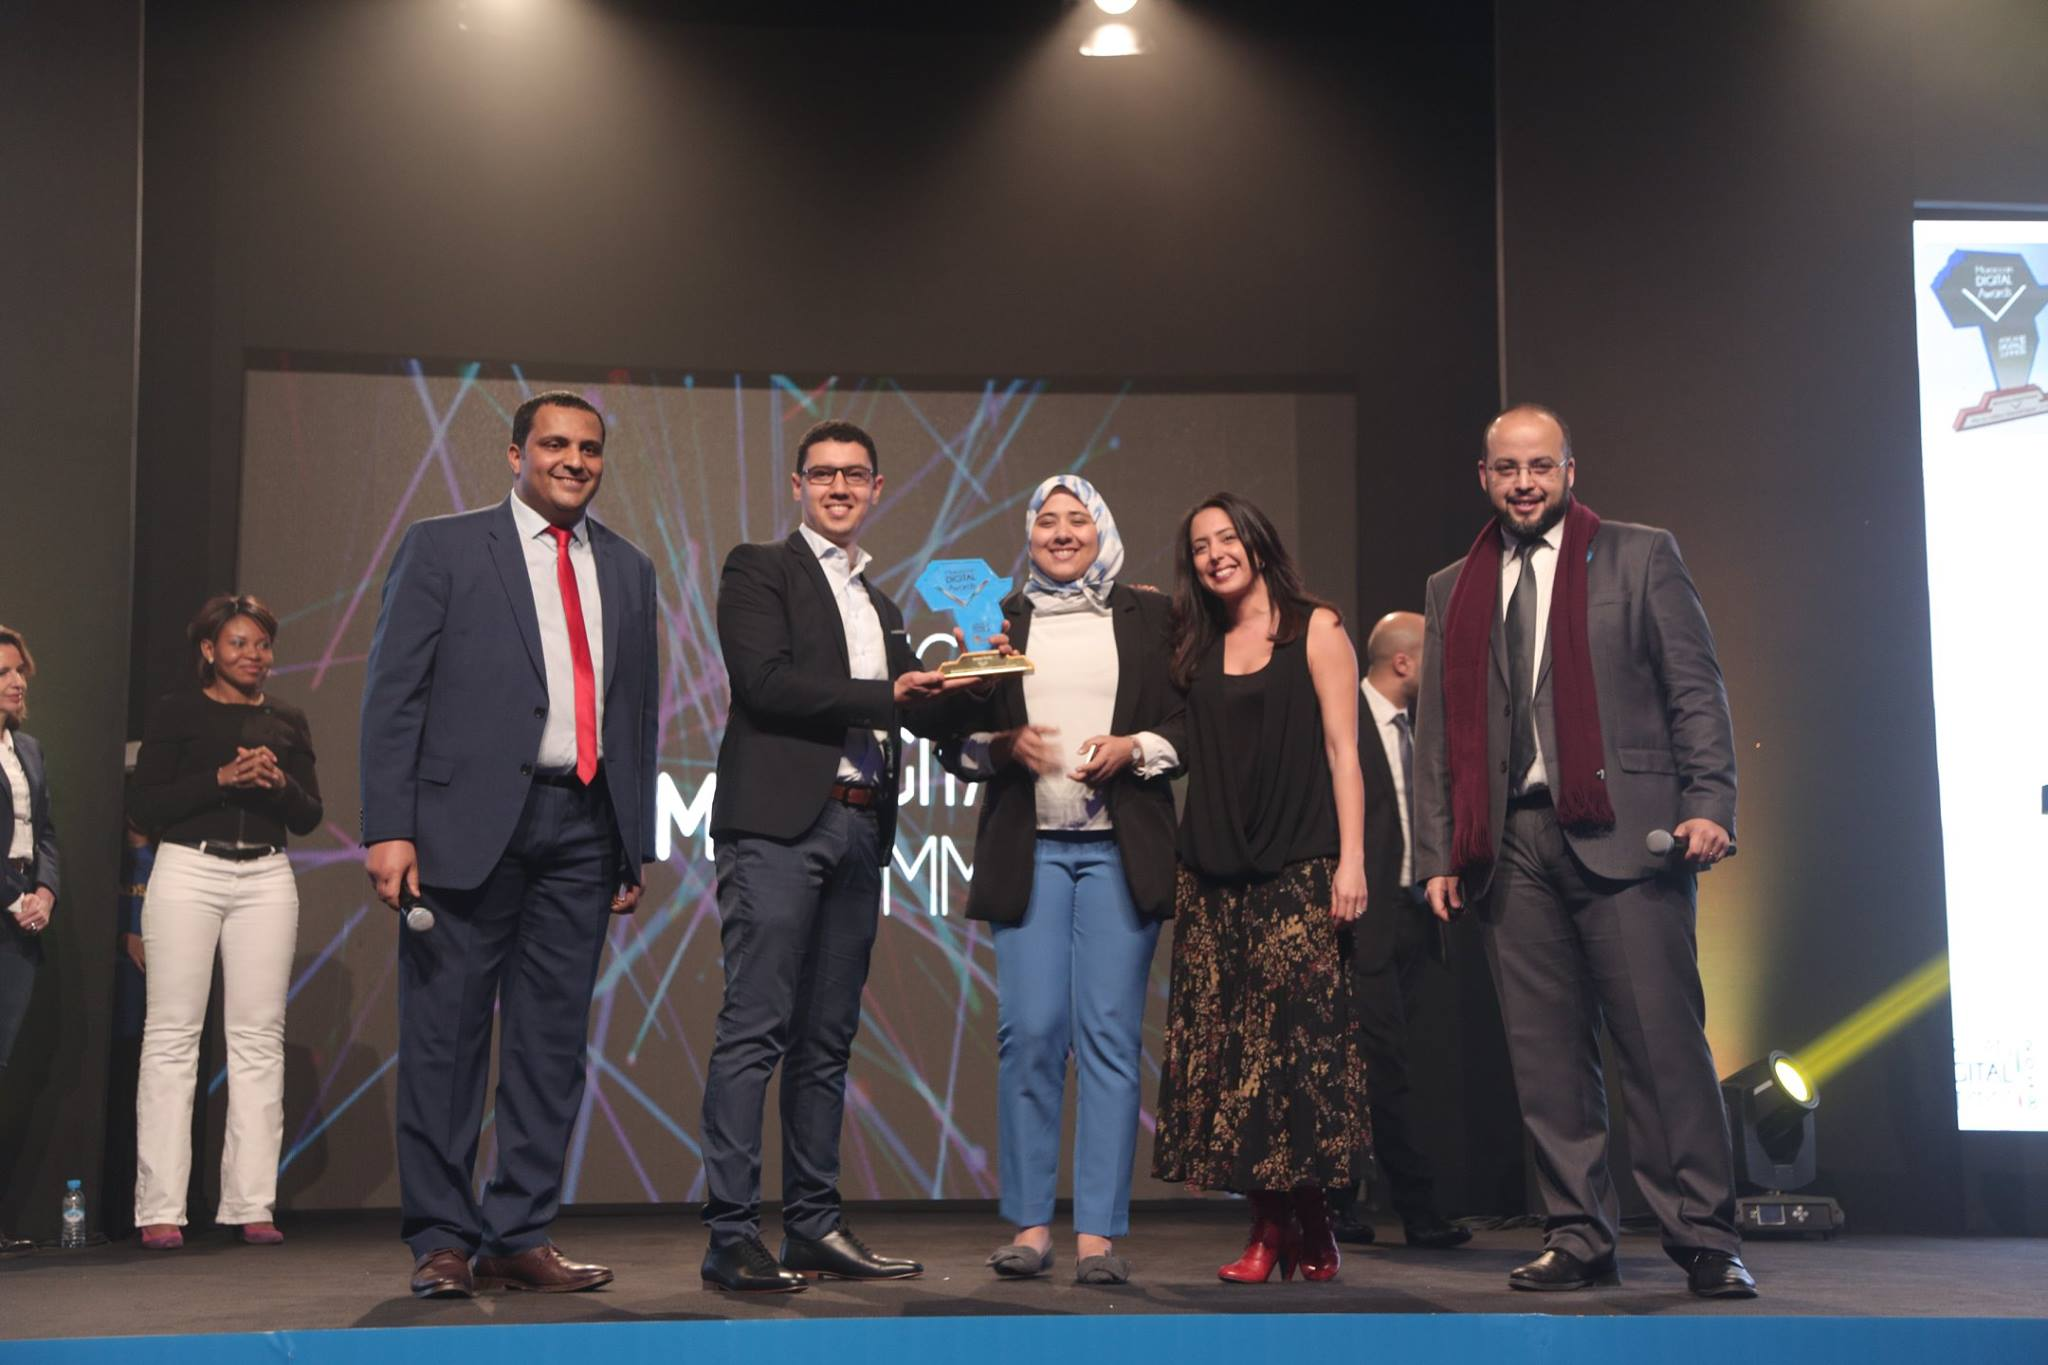 Moroccan Digital Awards 2018 : Les lauréats